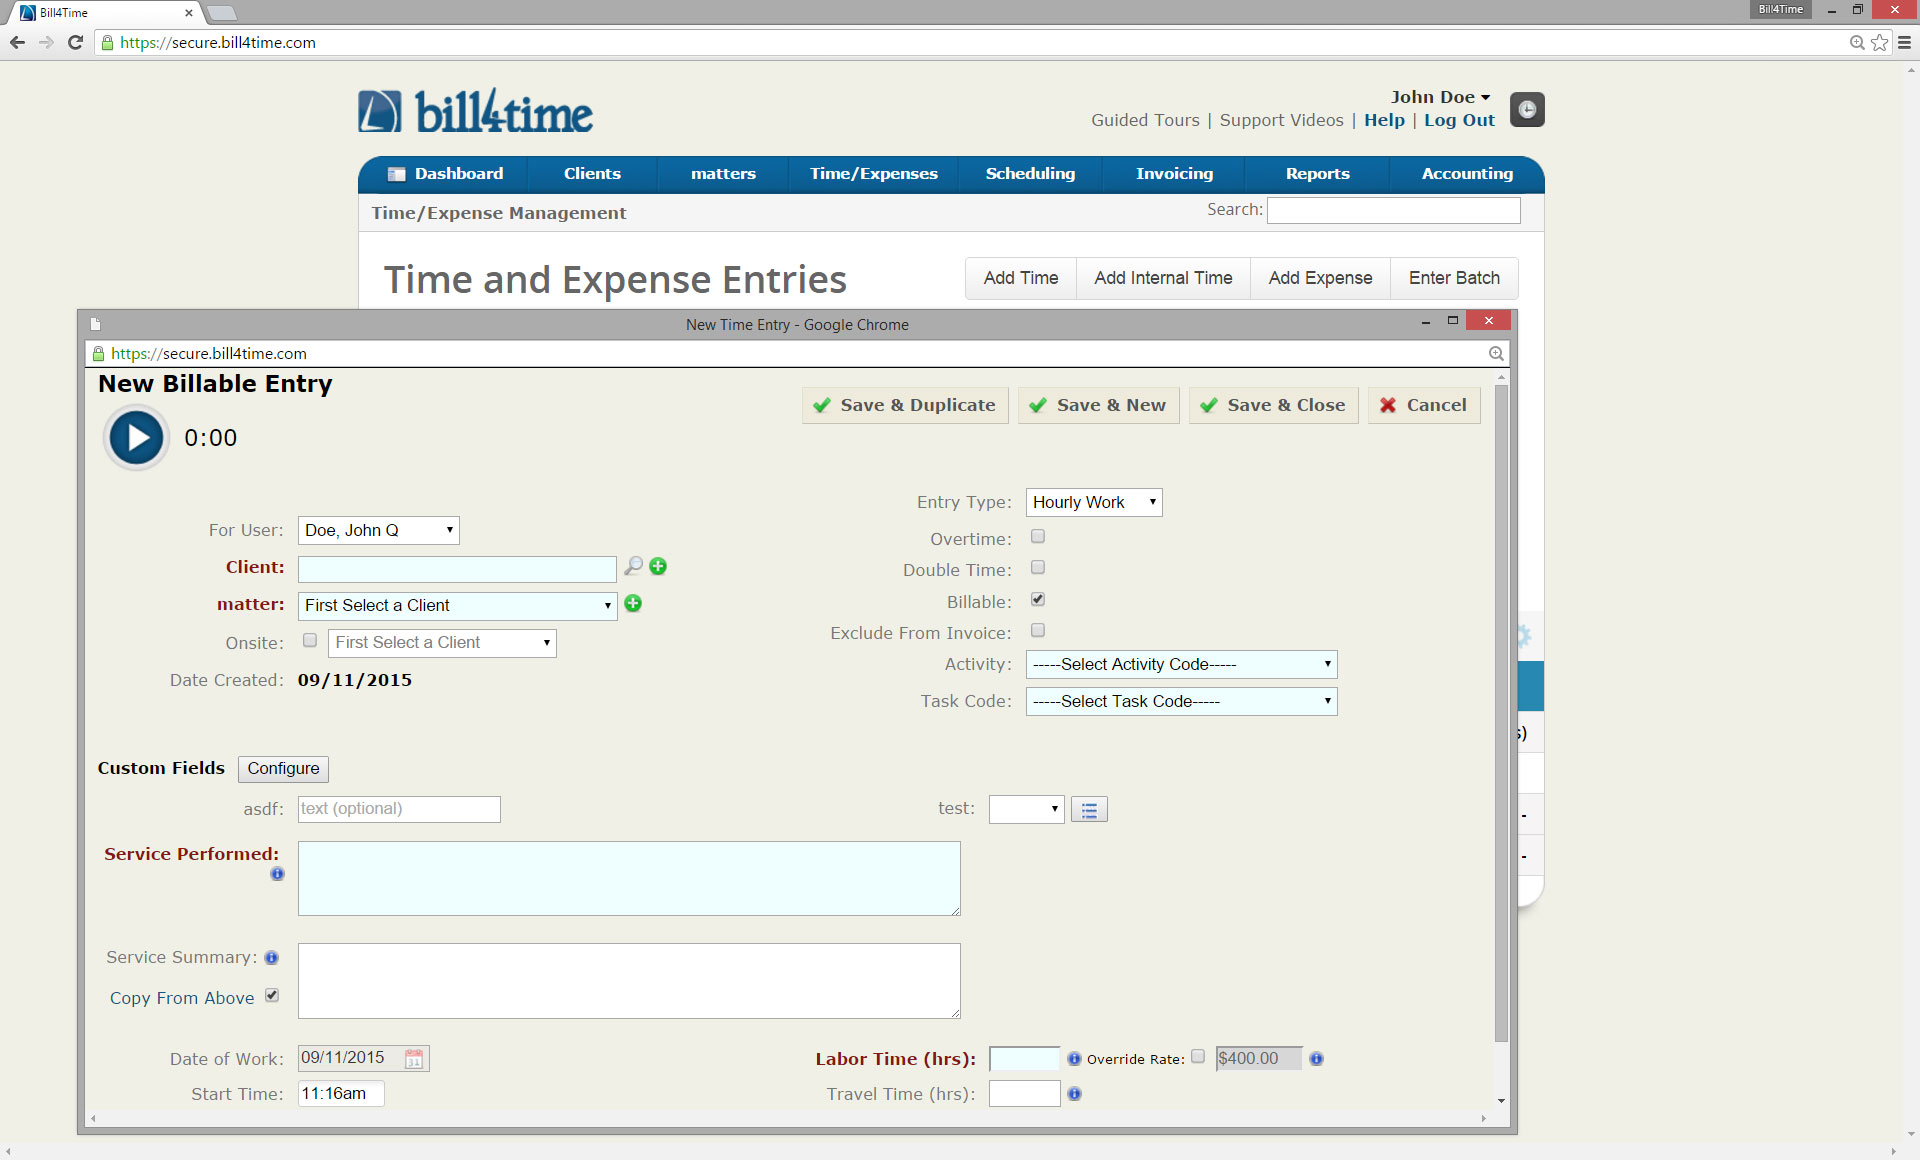 Bill4Time Software - Billable entry